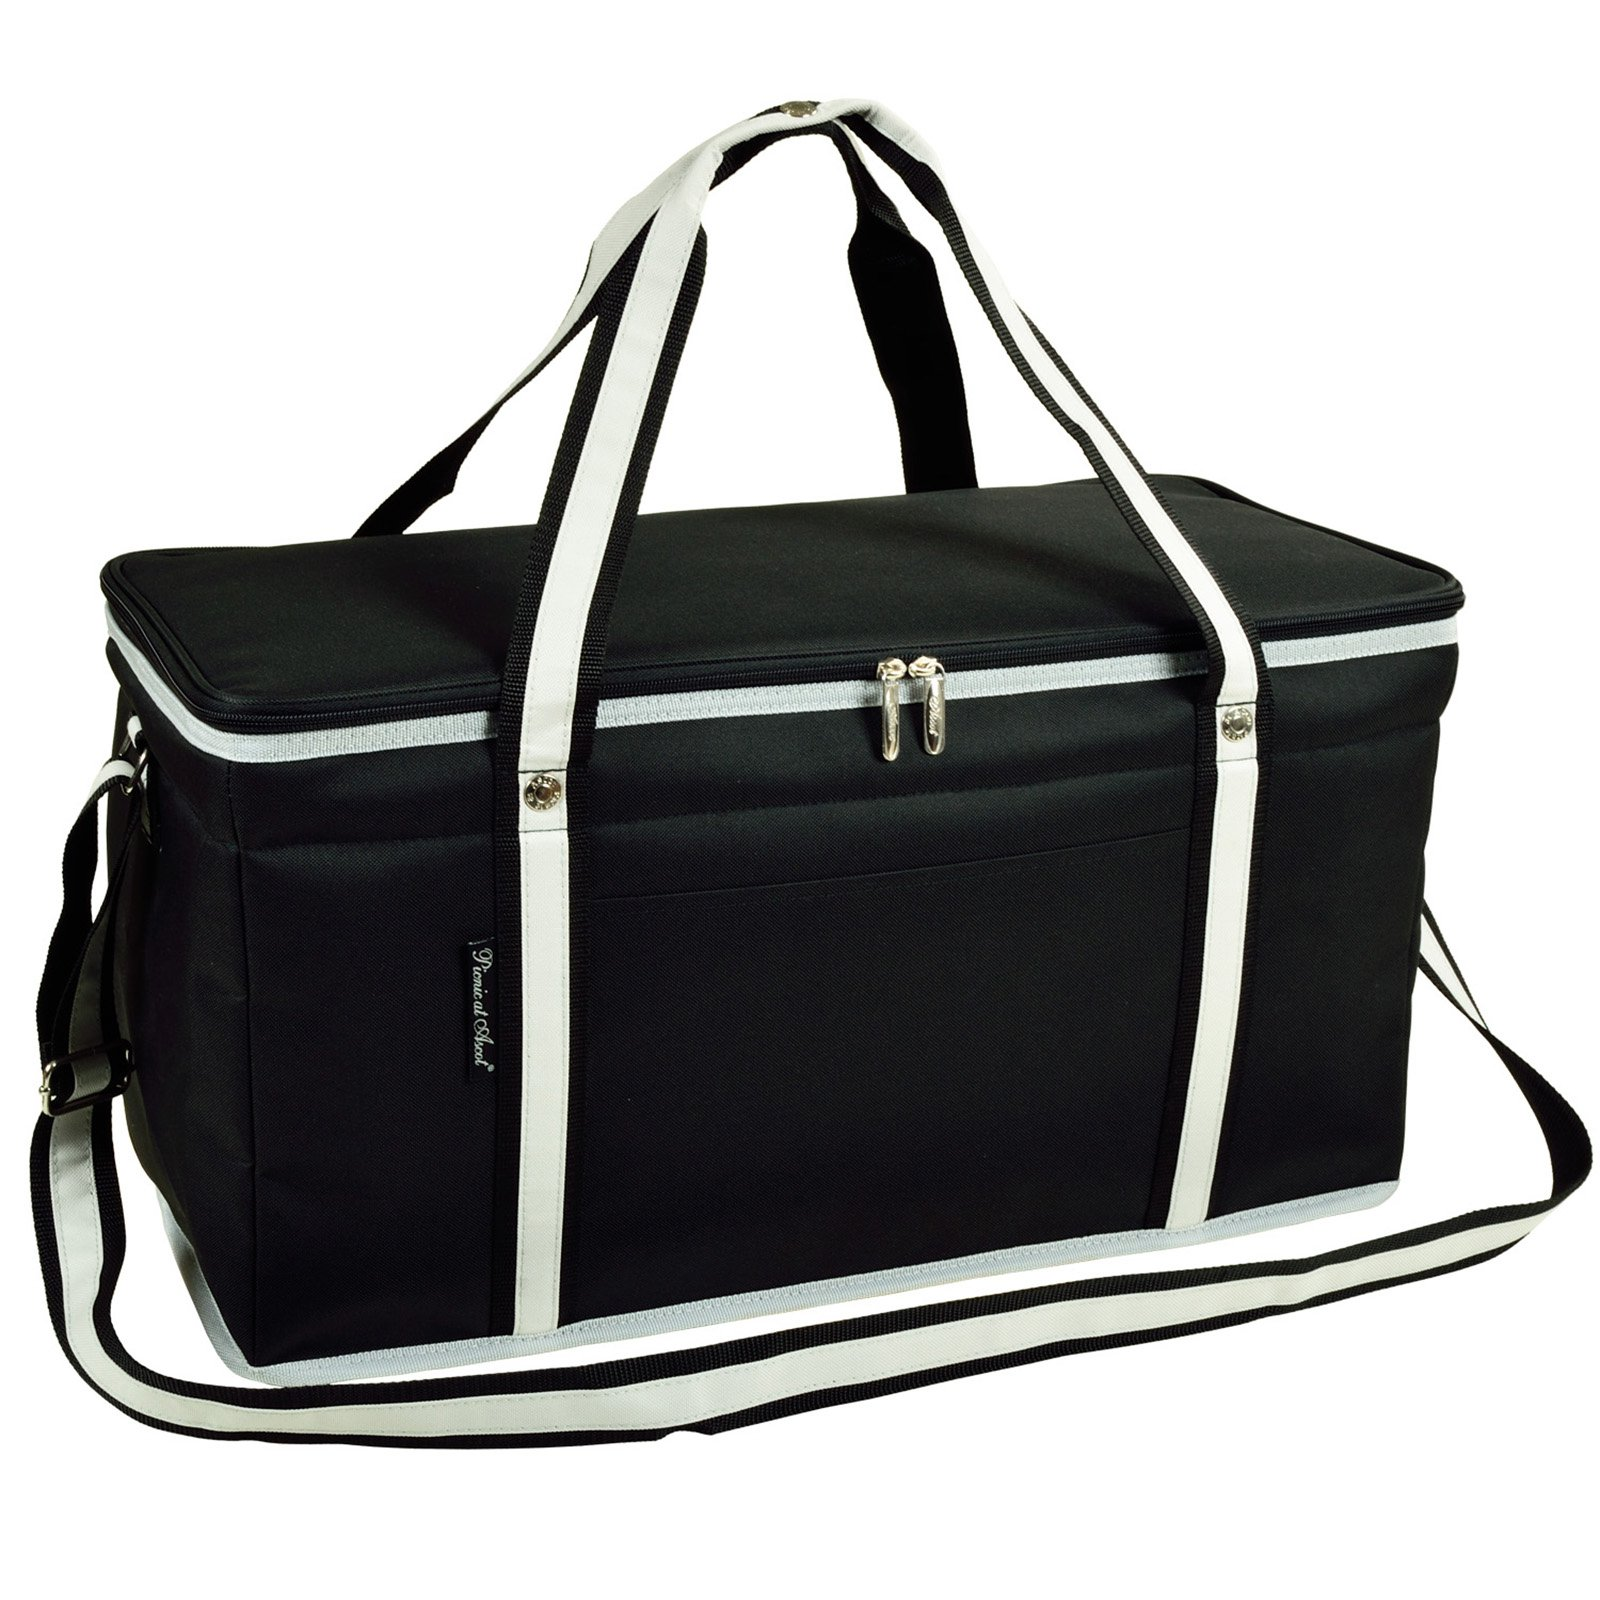 Picnic at Ascot 72 Can Folding Cooler - Black